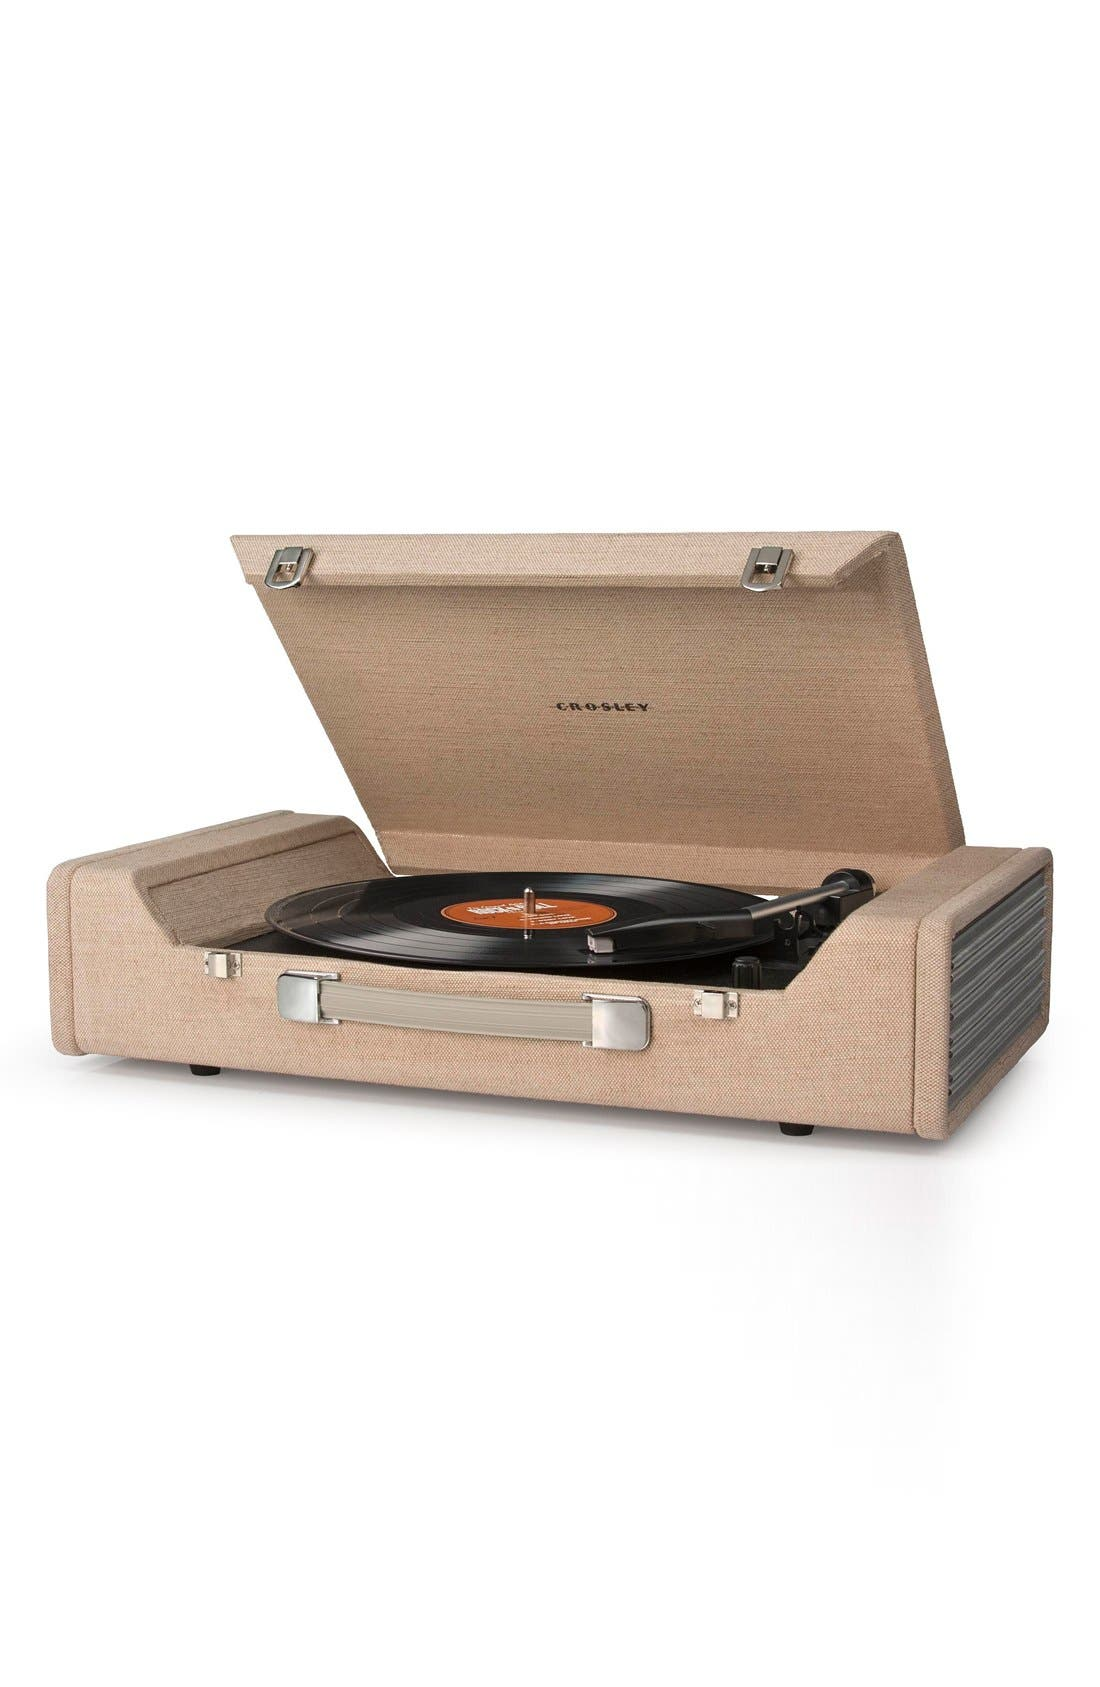 'Nomad' Turntable,                             Alternate thumbnail 2, color,                             Beige/ Khaki